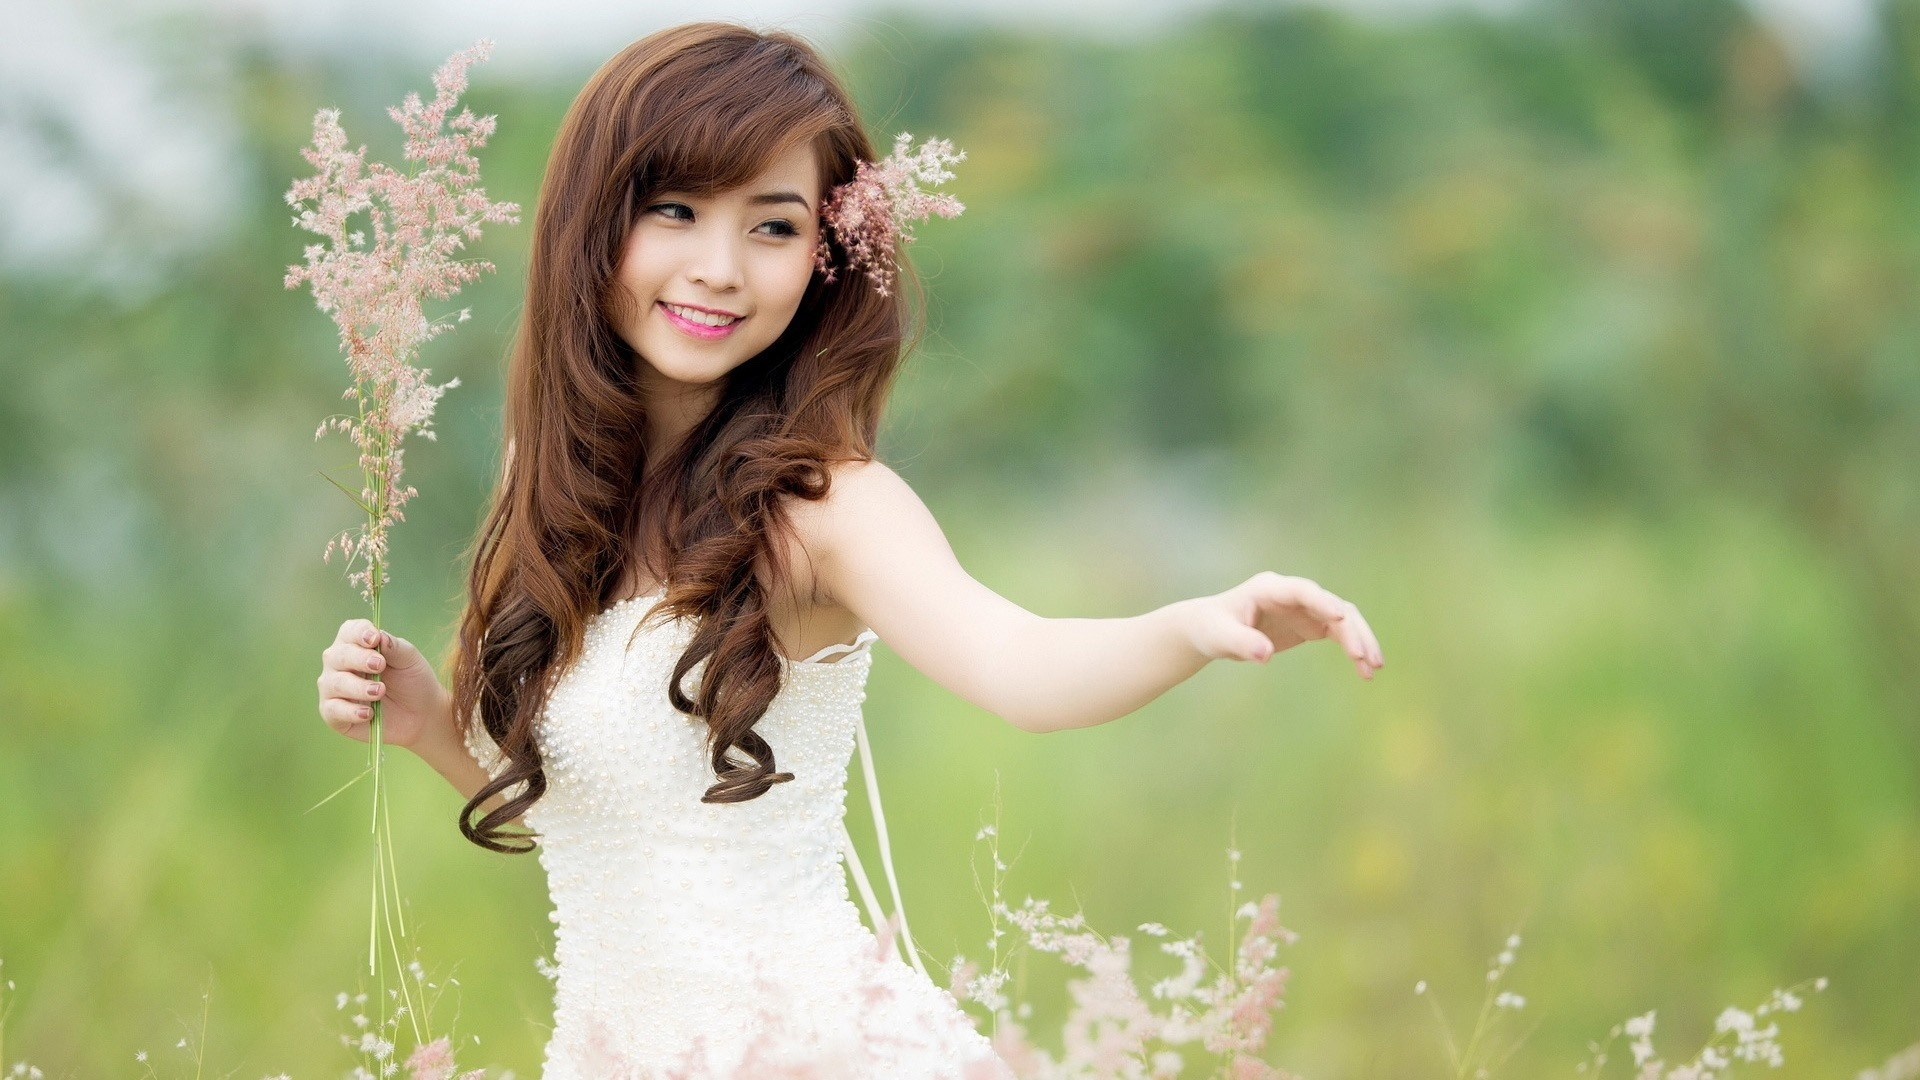 Res: 1920x1080, Chinese Girls Wallpapers HD Pictures One HD Wallpaper Pictures ... - HD  Wallpapers